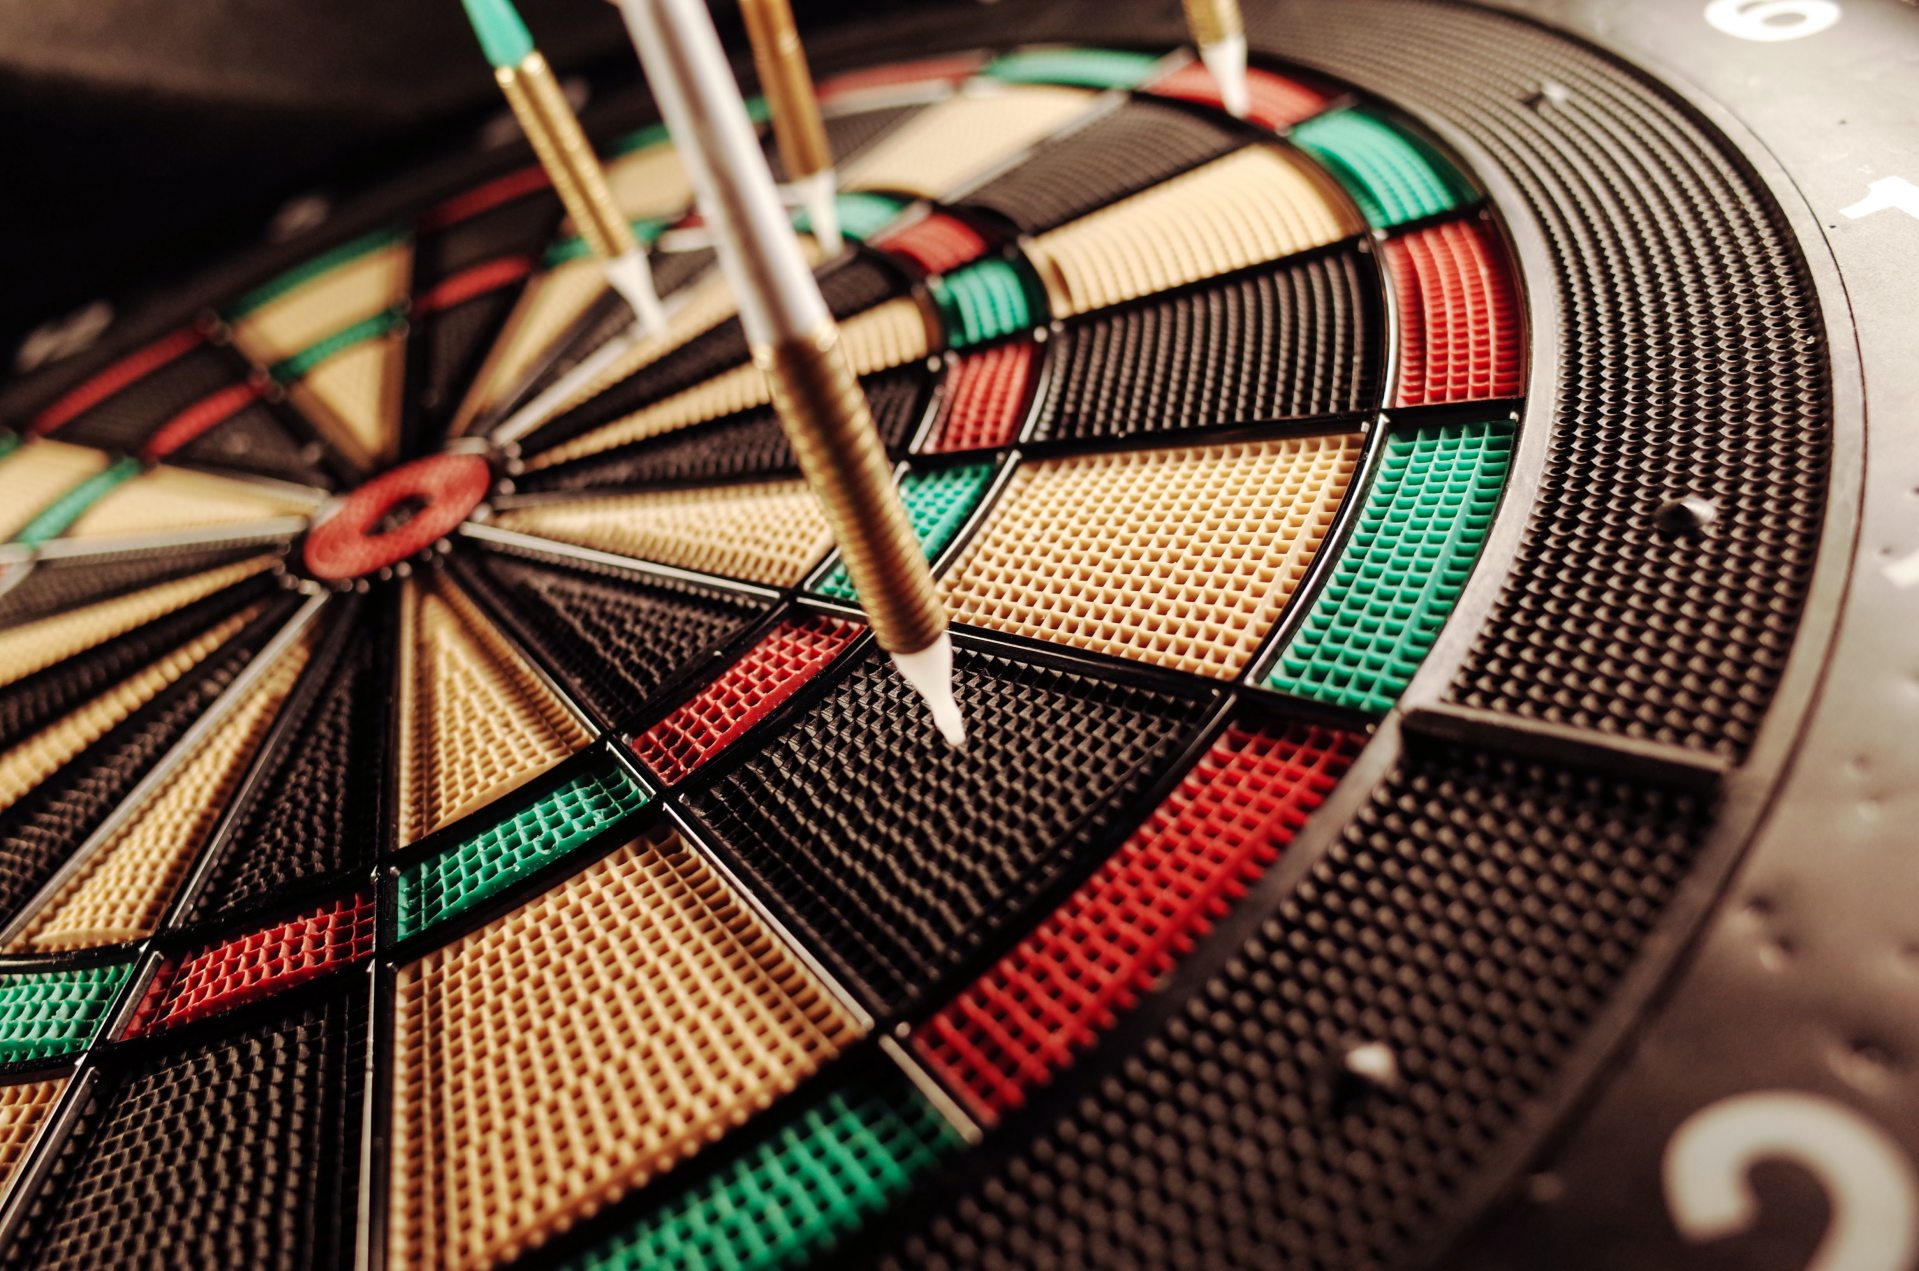 Darts on a dart board.